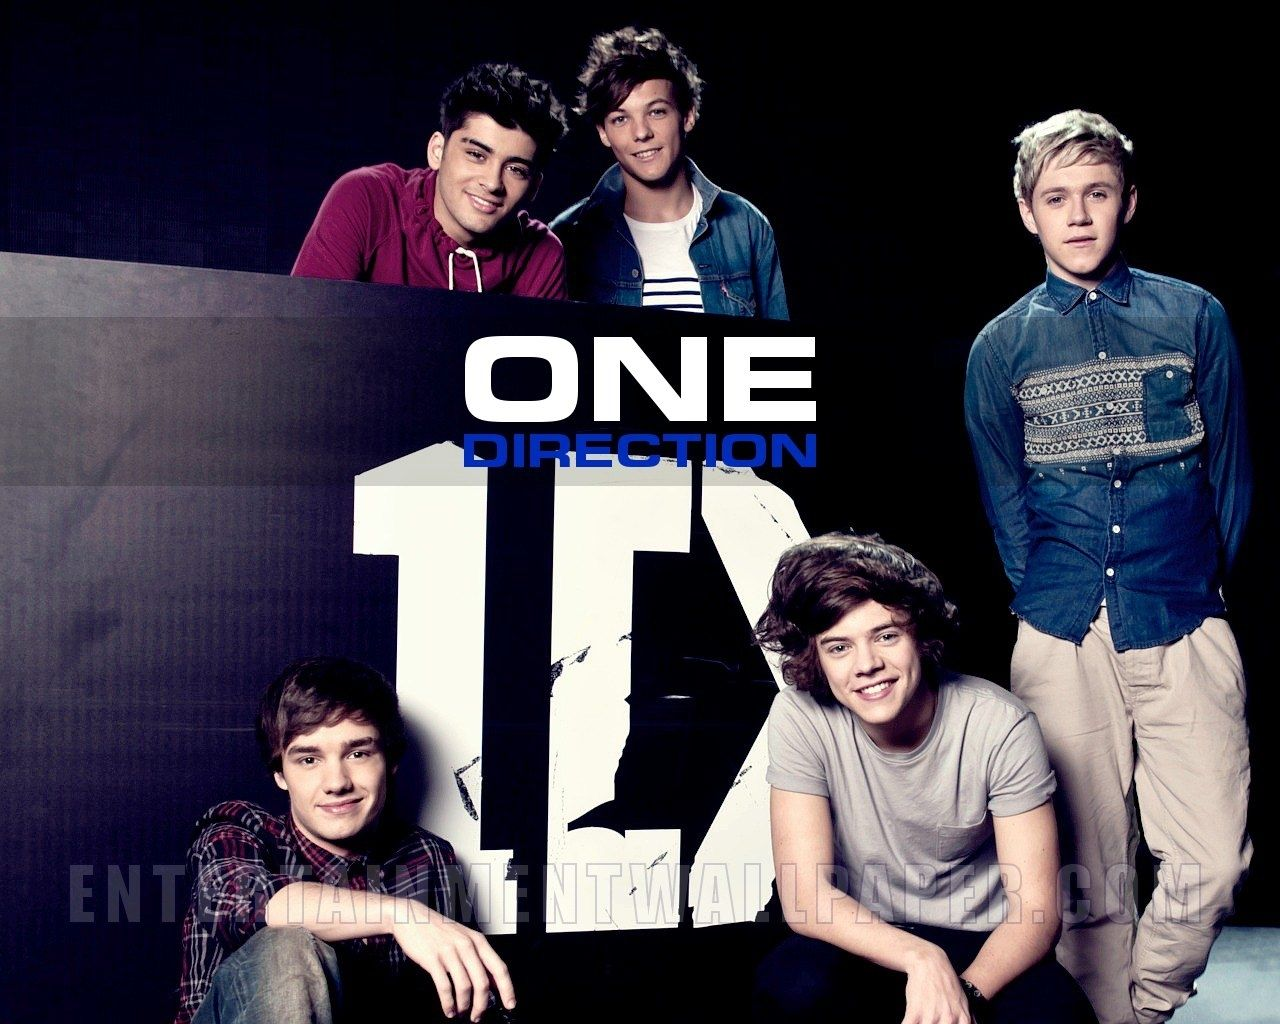 10 Most Popular One Direction 2014 Wallpaper Full Hd 1080p For Pc Desktop In 2020 One Direction Wallpaper One Direction 2014 One Direction Images